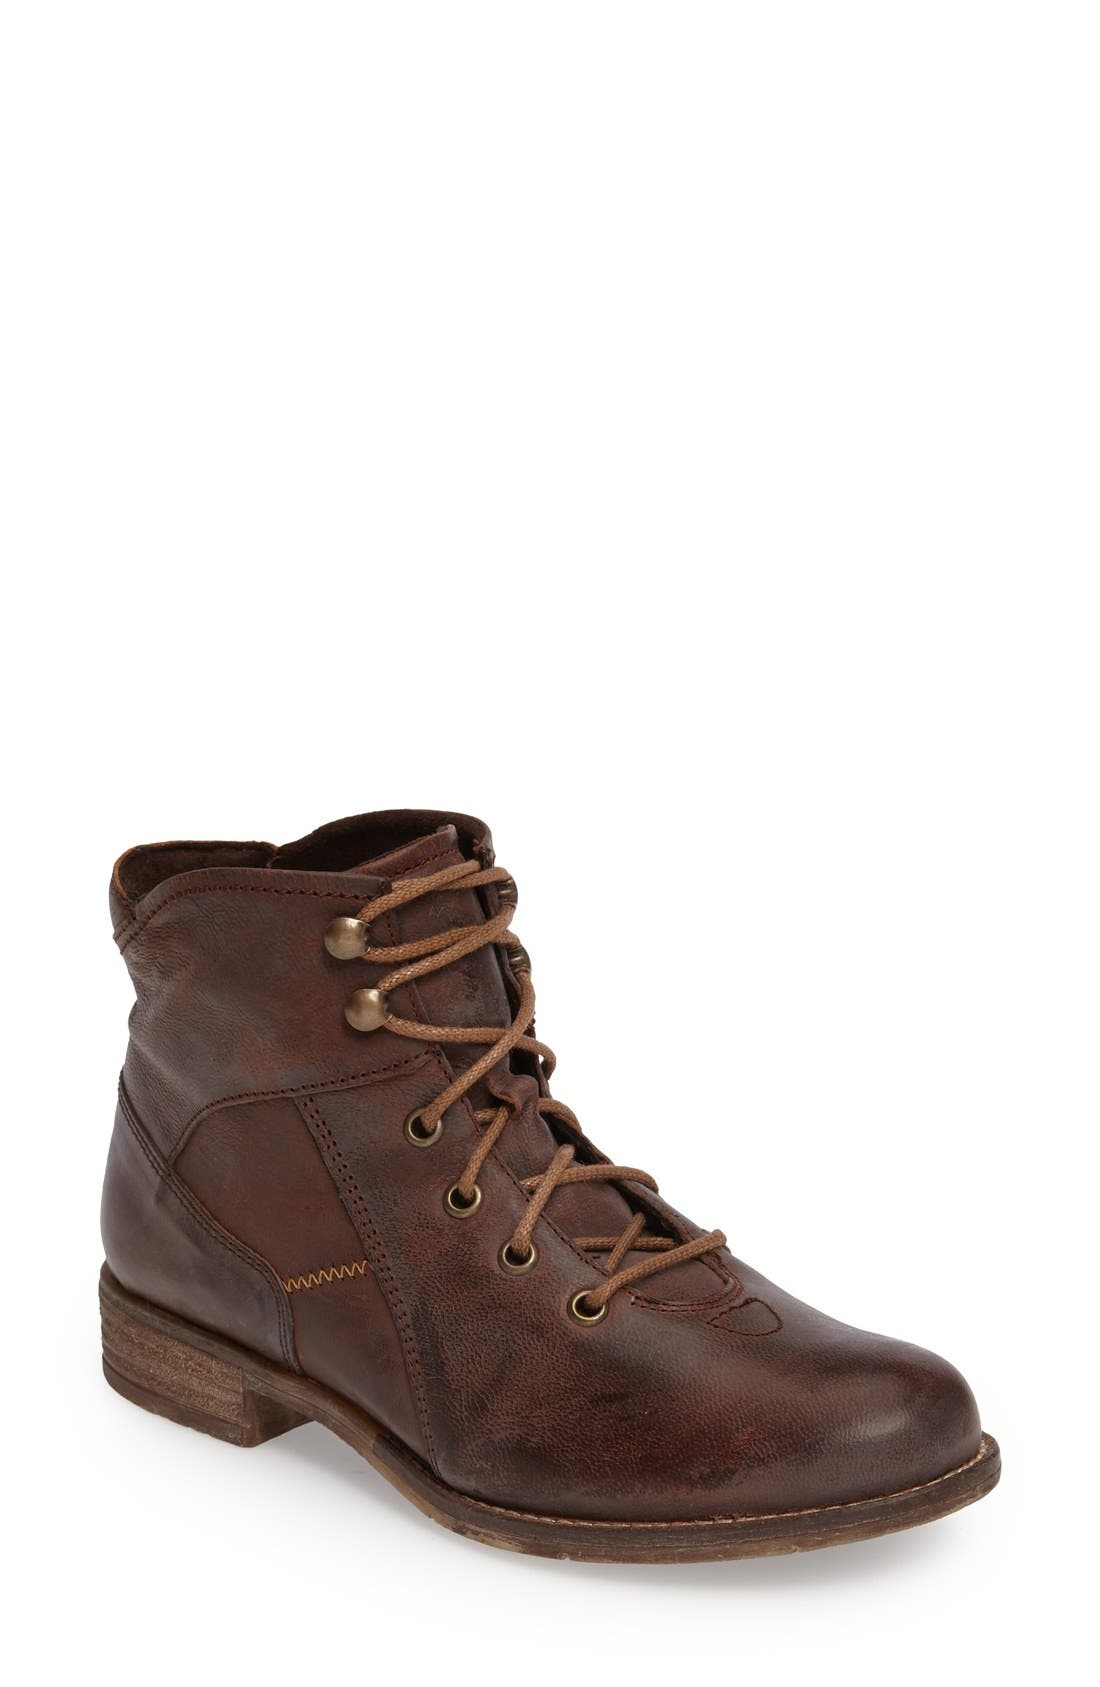 Sienna 11 Boot,                             Main thumbnail 1, color,                             Moro Leather